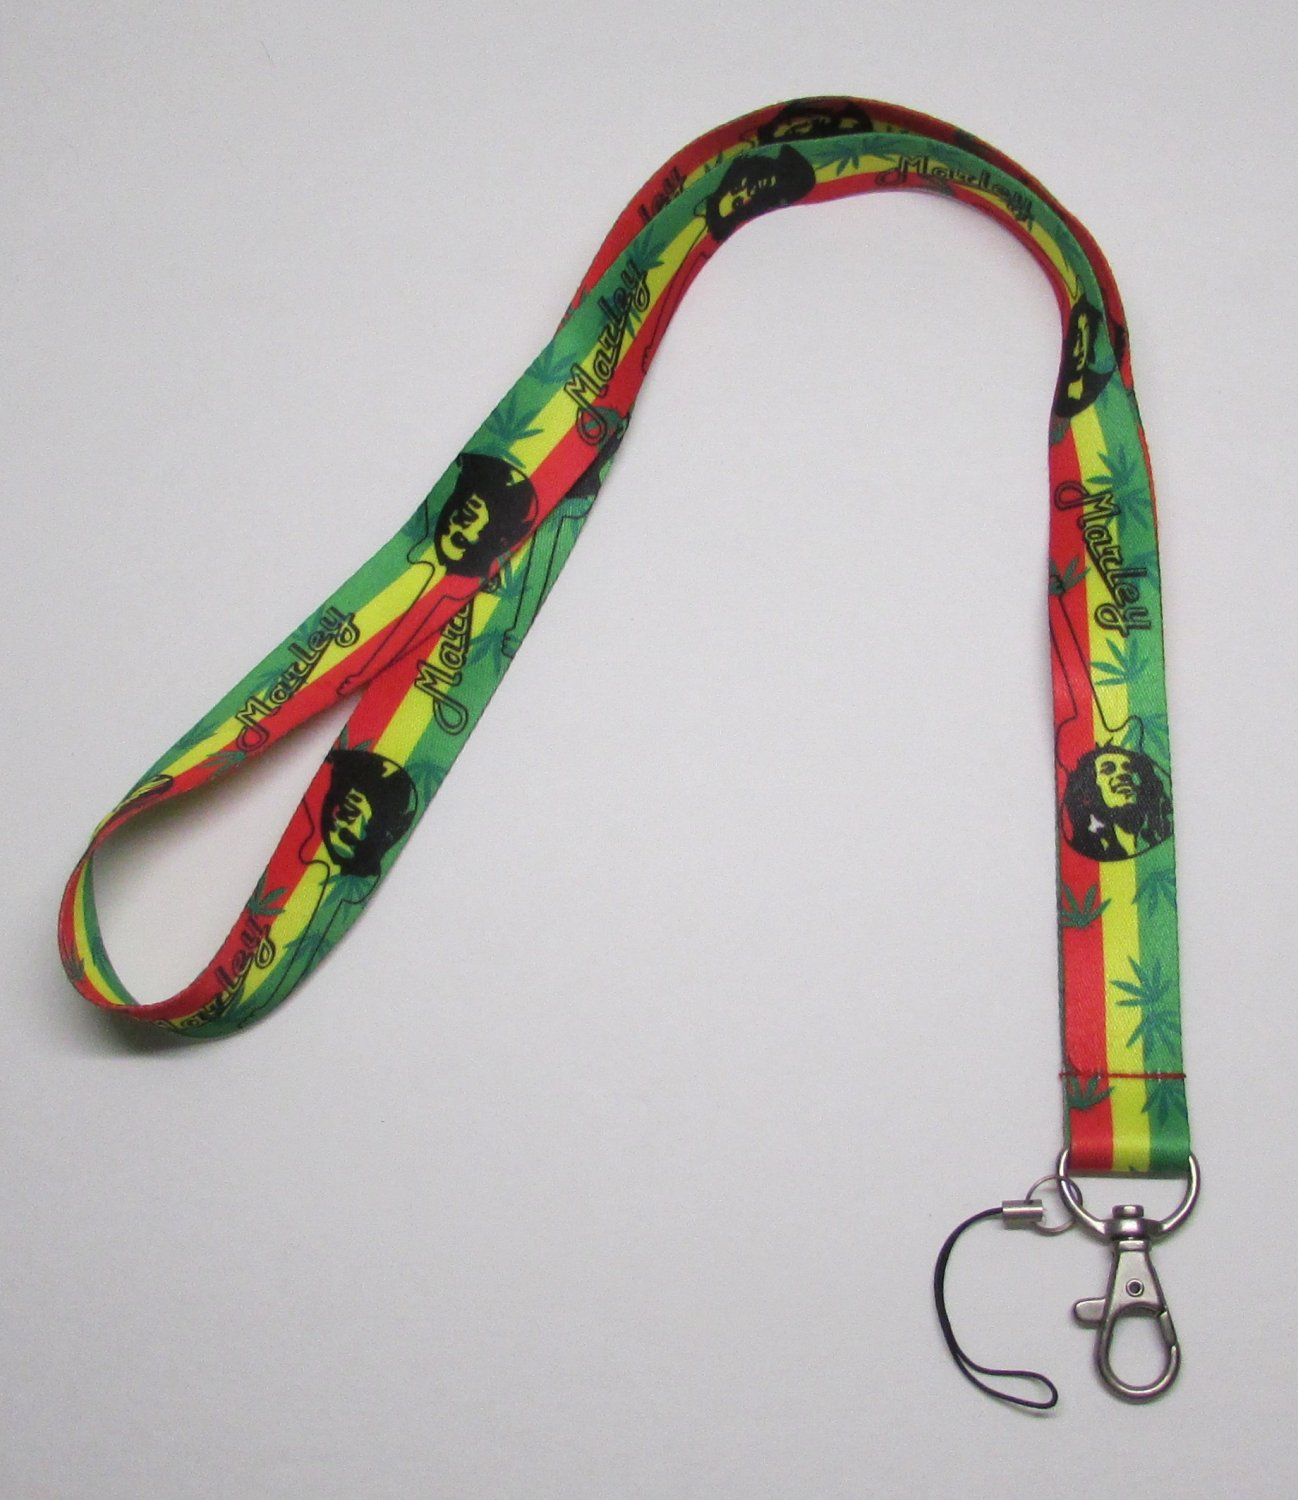 BOB MARLEY Marijuana Leaf LANYARD KEY CHAIN Ring Keychain ID Holder NEW